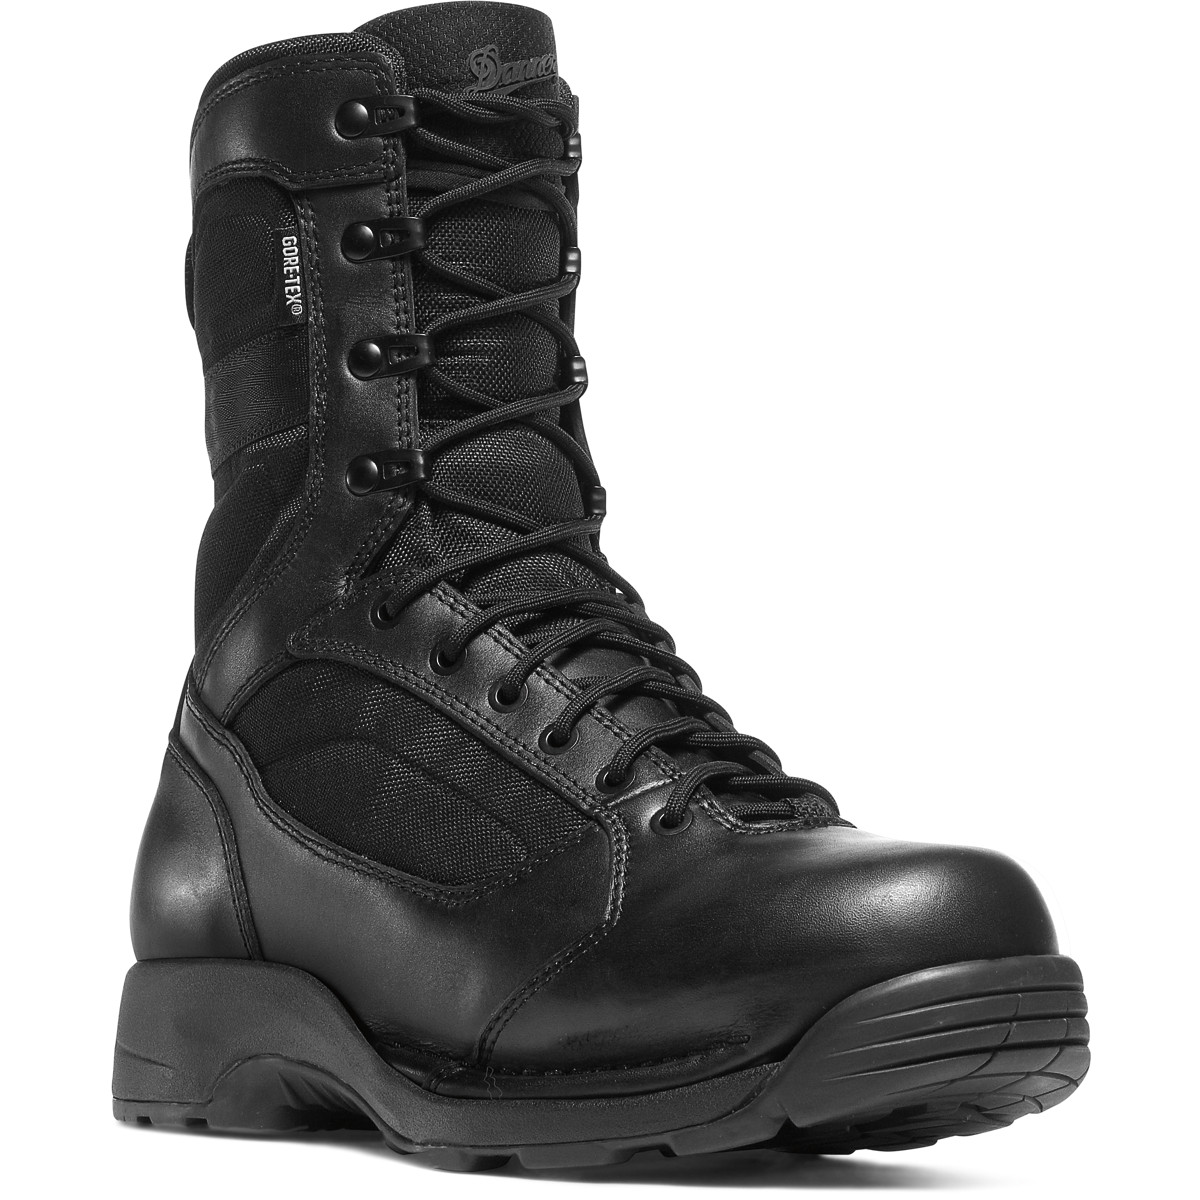 Danner - Striker Torrent 8